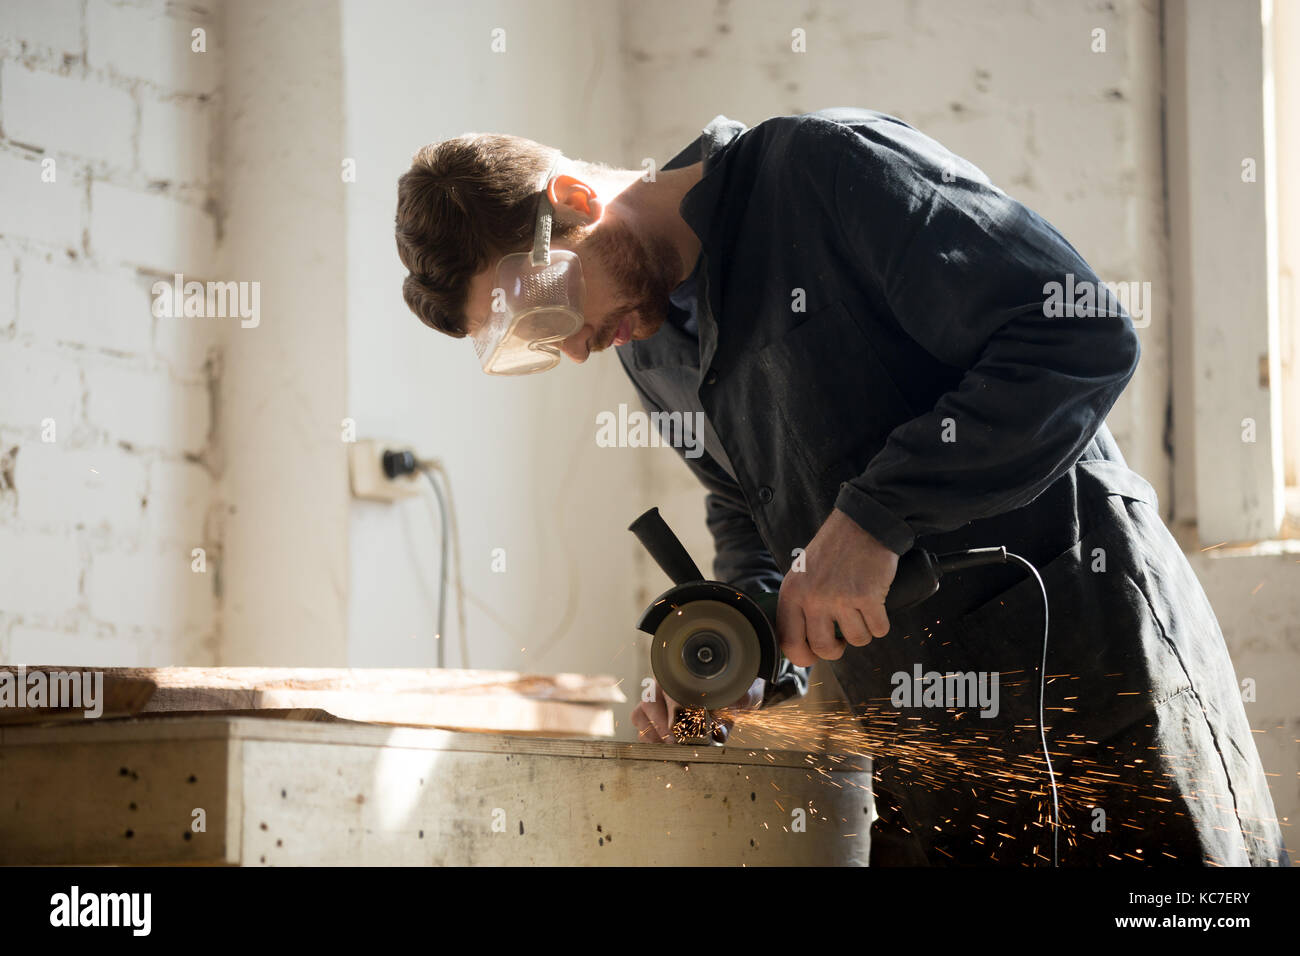 Side view of worker using angle grinder for metal cutting  - Stock Image